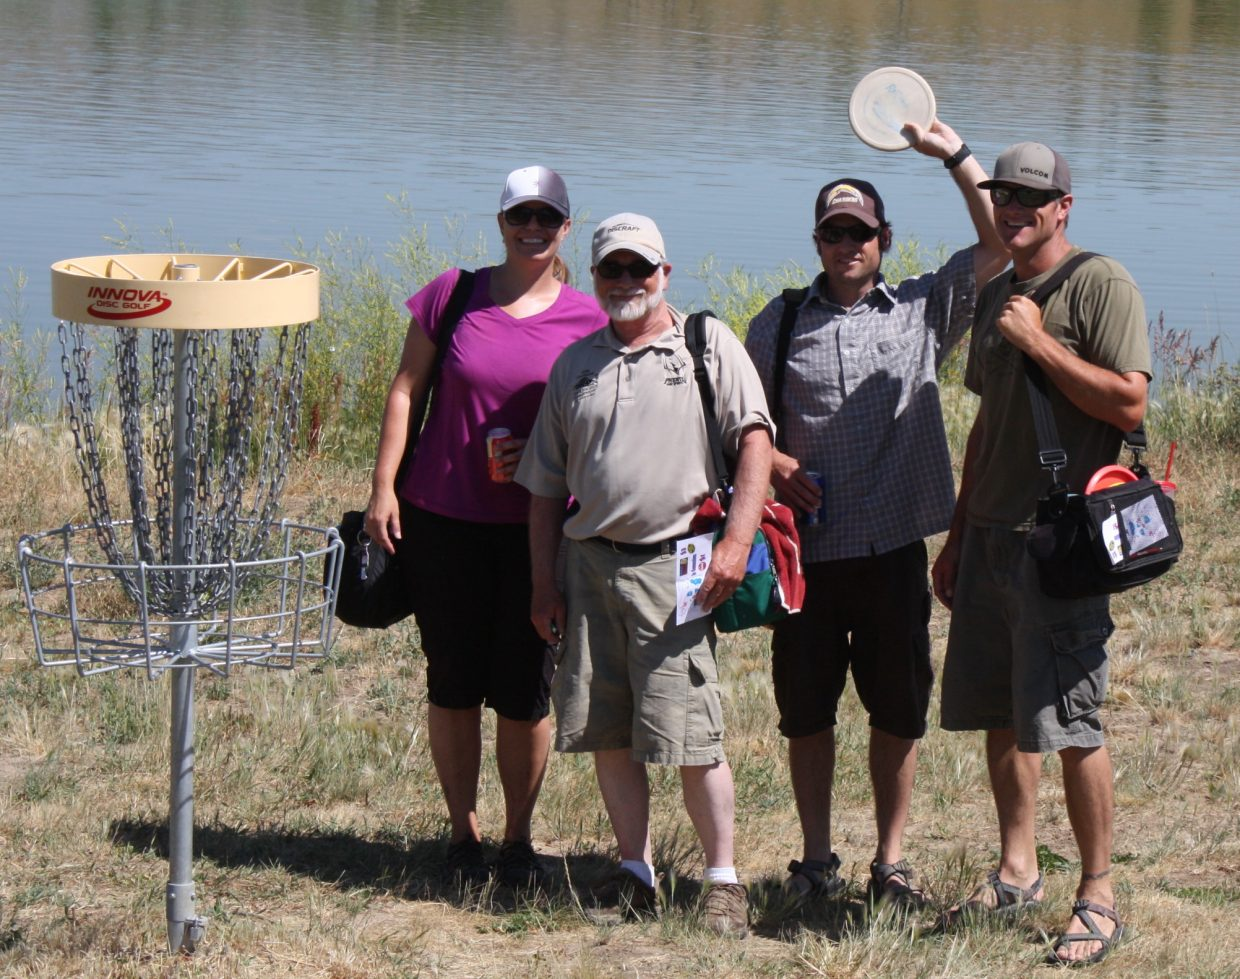 A disc golf tournament was one of several events held as part of Hayden Daze, which took place Friday and Saturday.